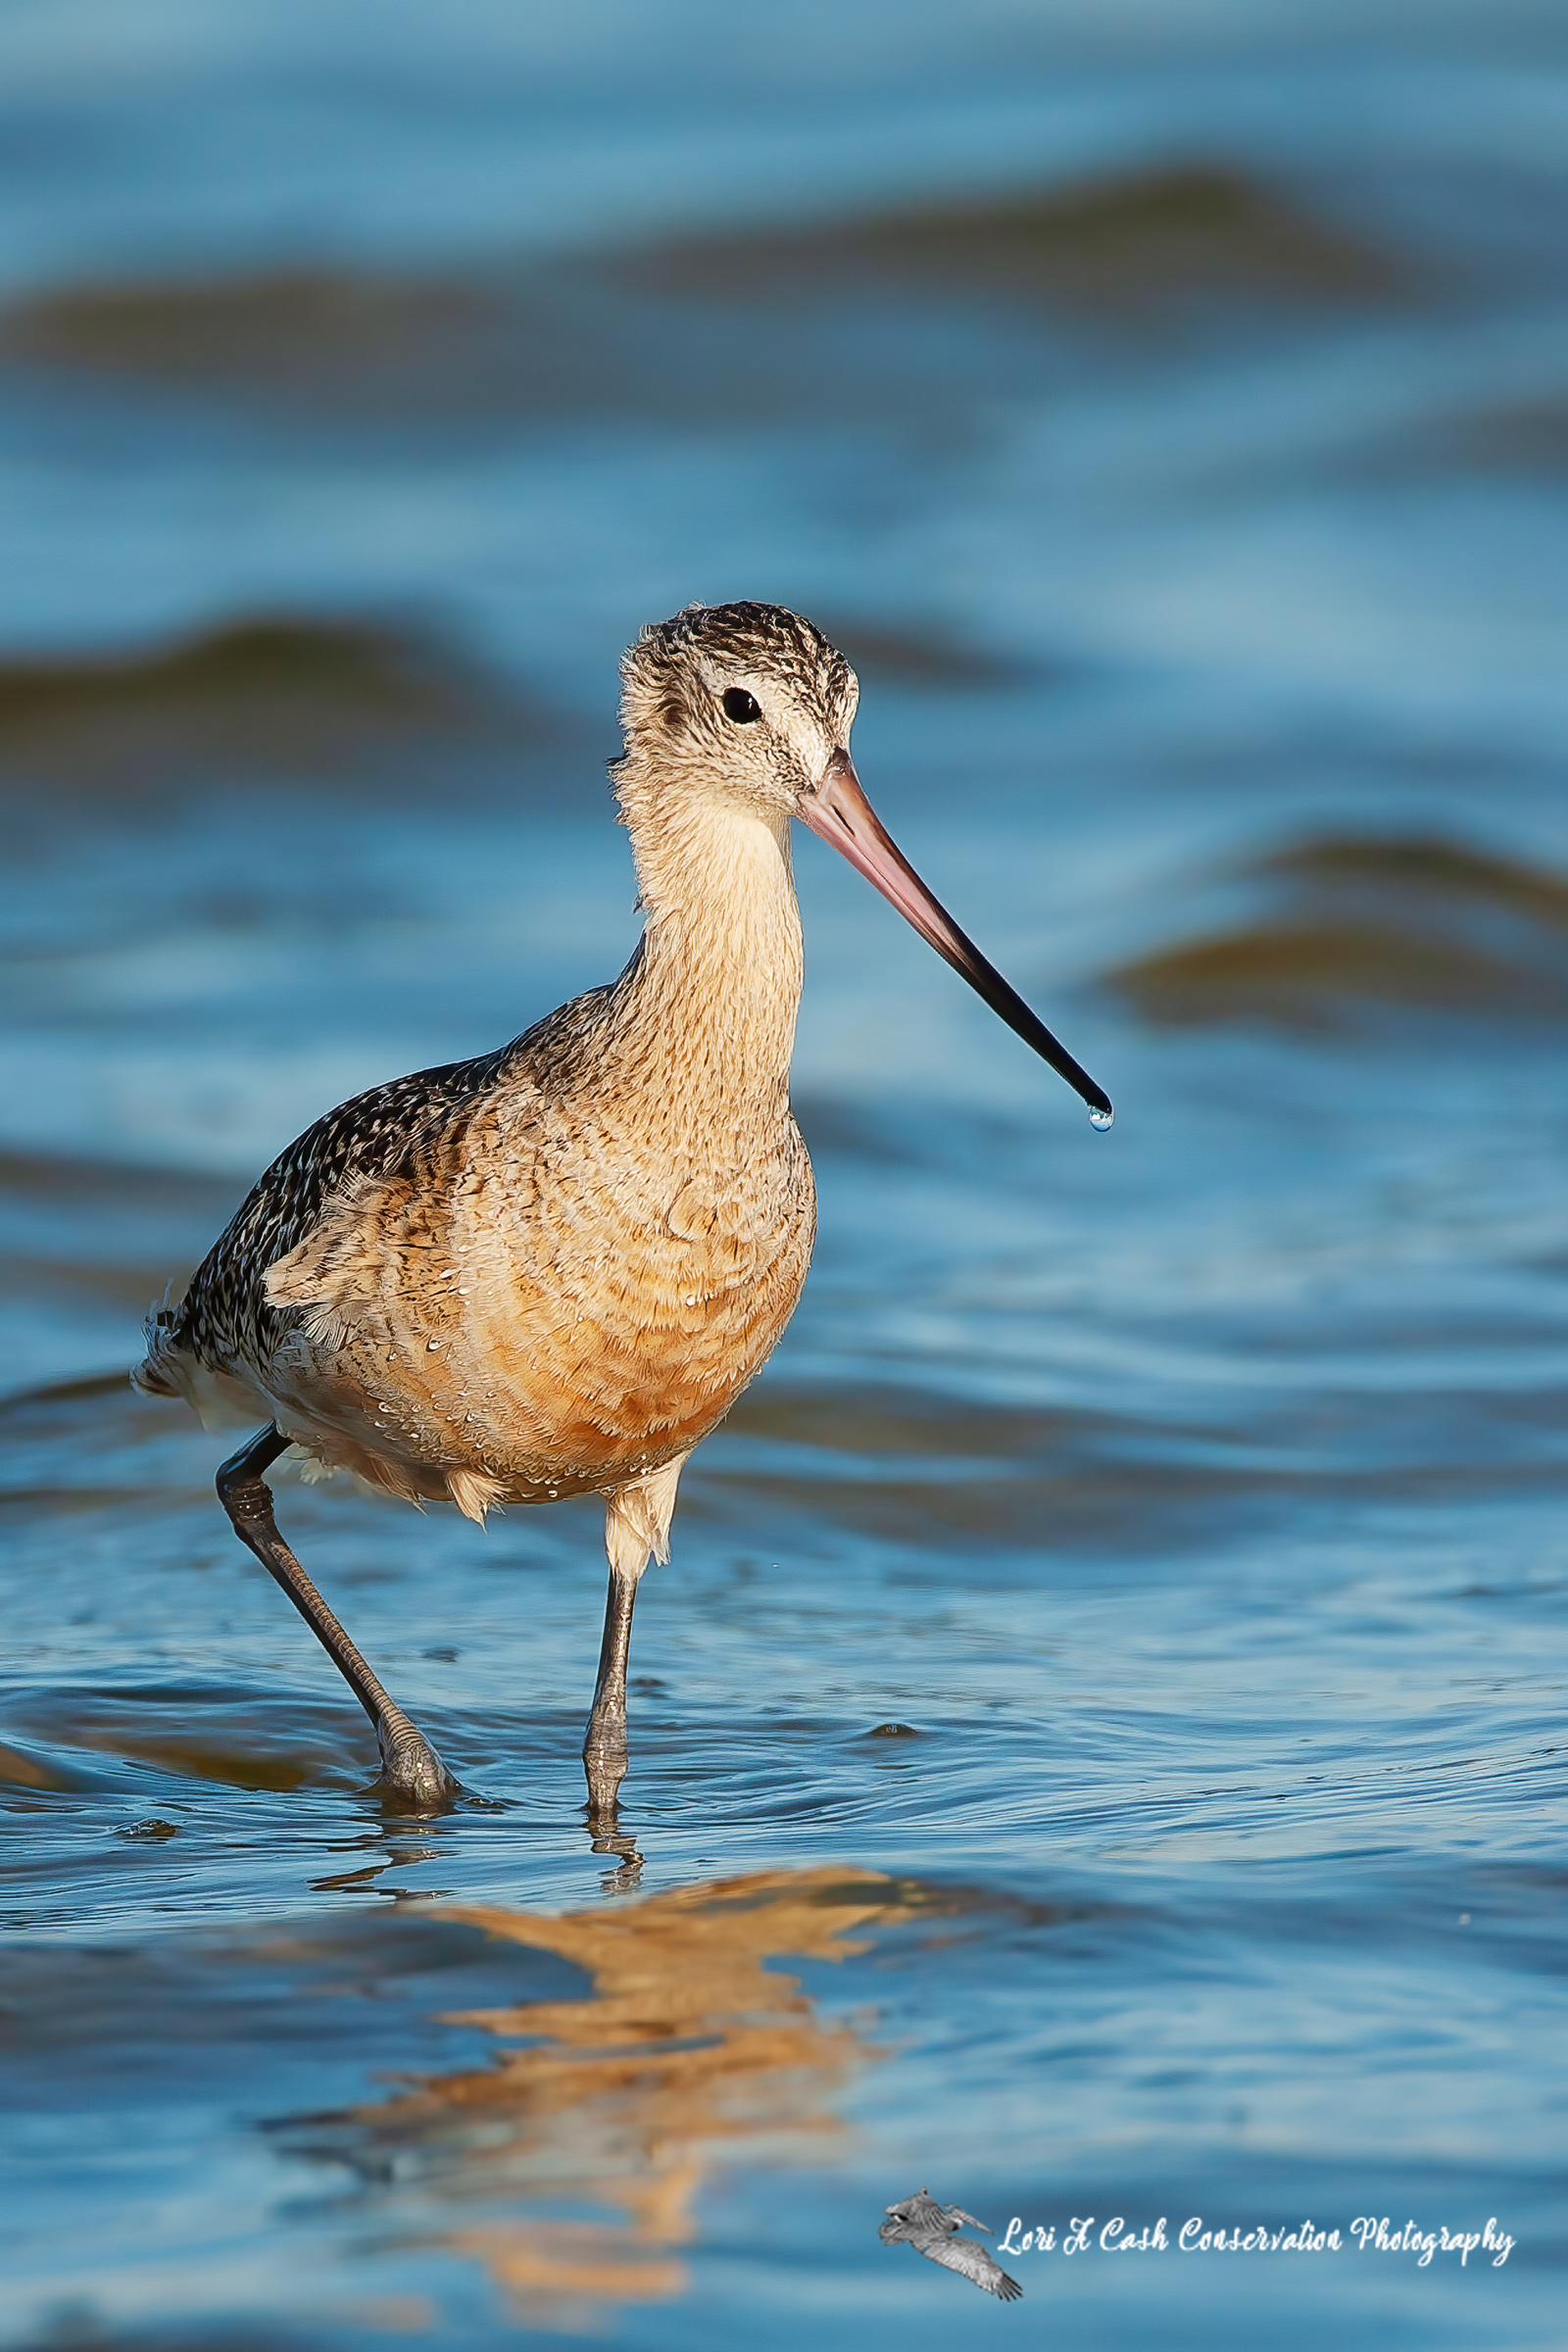 Marbled godwit walking in the water at Pea Island National Wildlife Refuge on the Outer Banks of North Carolina.